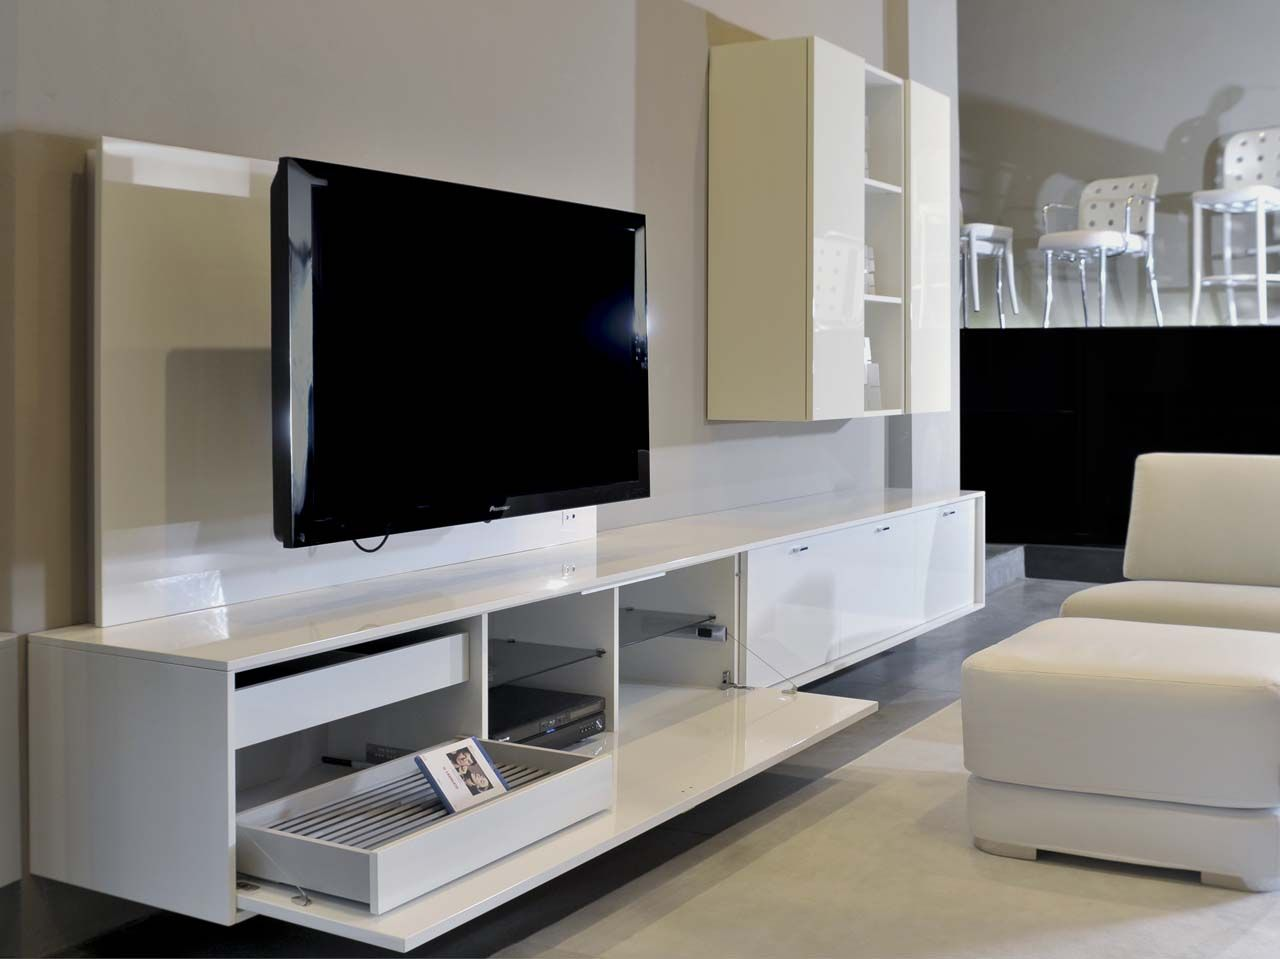 Modular # Furniture In # Bangalore  Interior Fascinating Modular Living Room Design Design Ideas